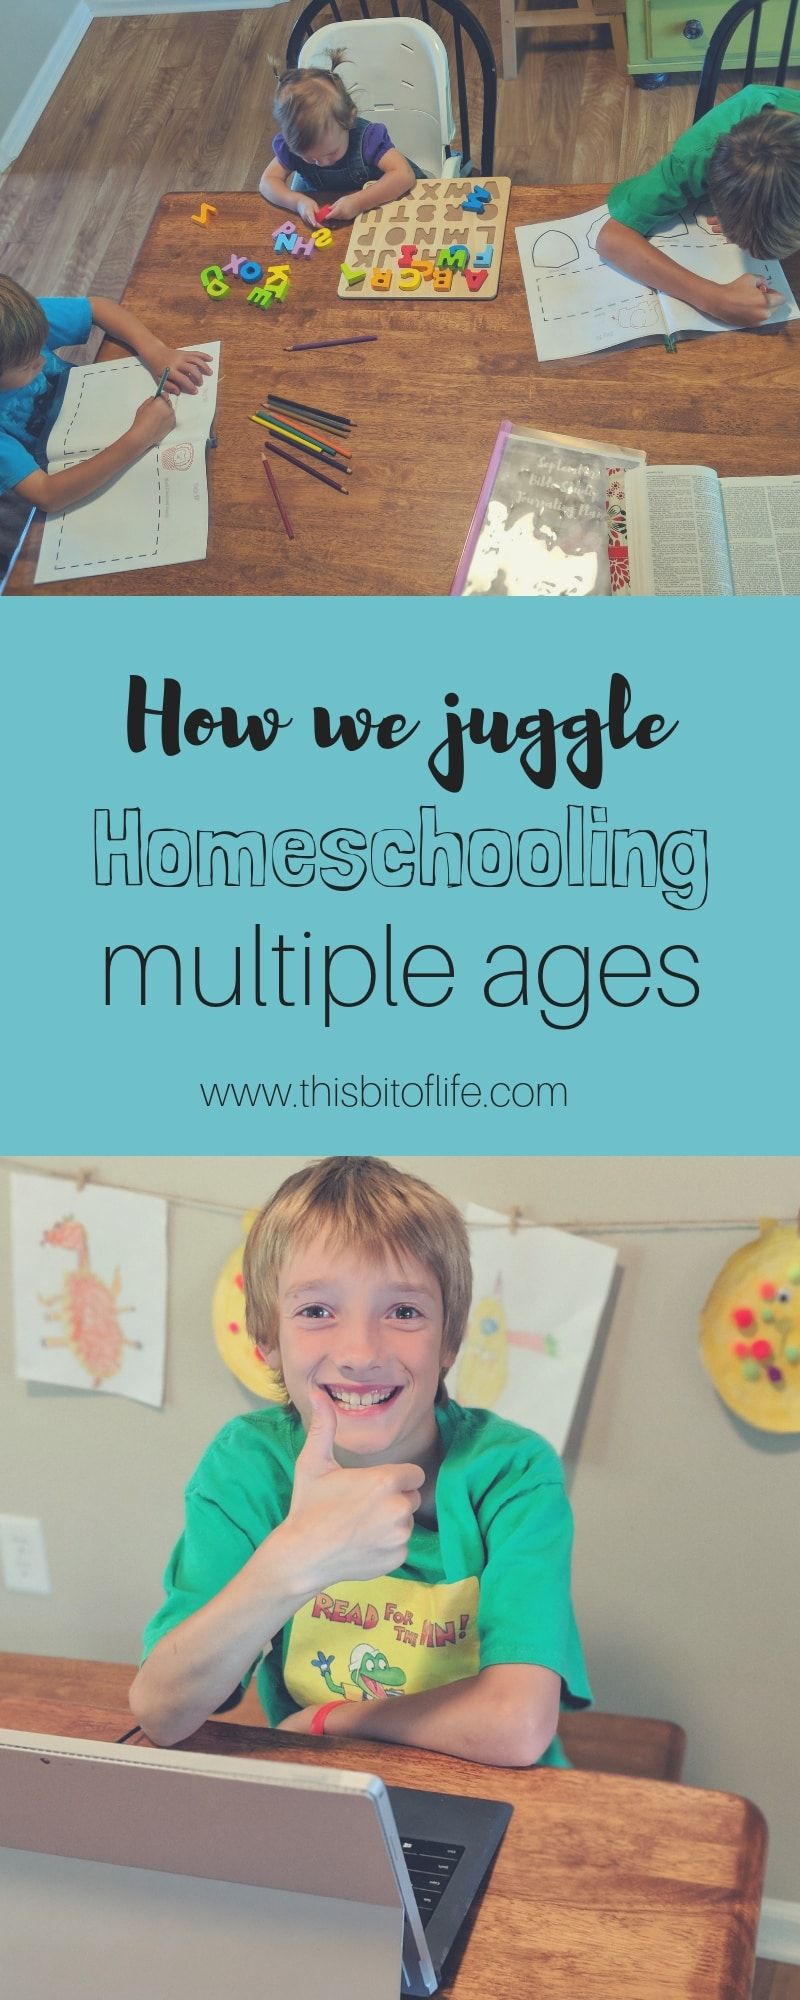 How we juggle homeschooling multiple ages. No matter how many kids you have, homeschooling multiple ages can be an adjustment! Here is how we handle it in our homeschool and how we combine subjects as we're able to. #homeschooling #homeschoolingmultipleages #homeschool #homeschoolmom